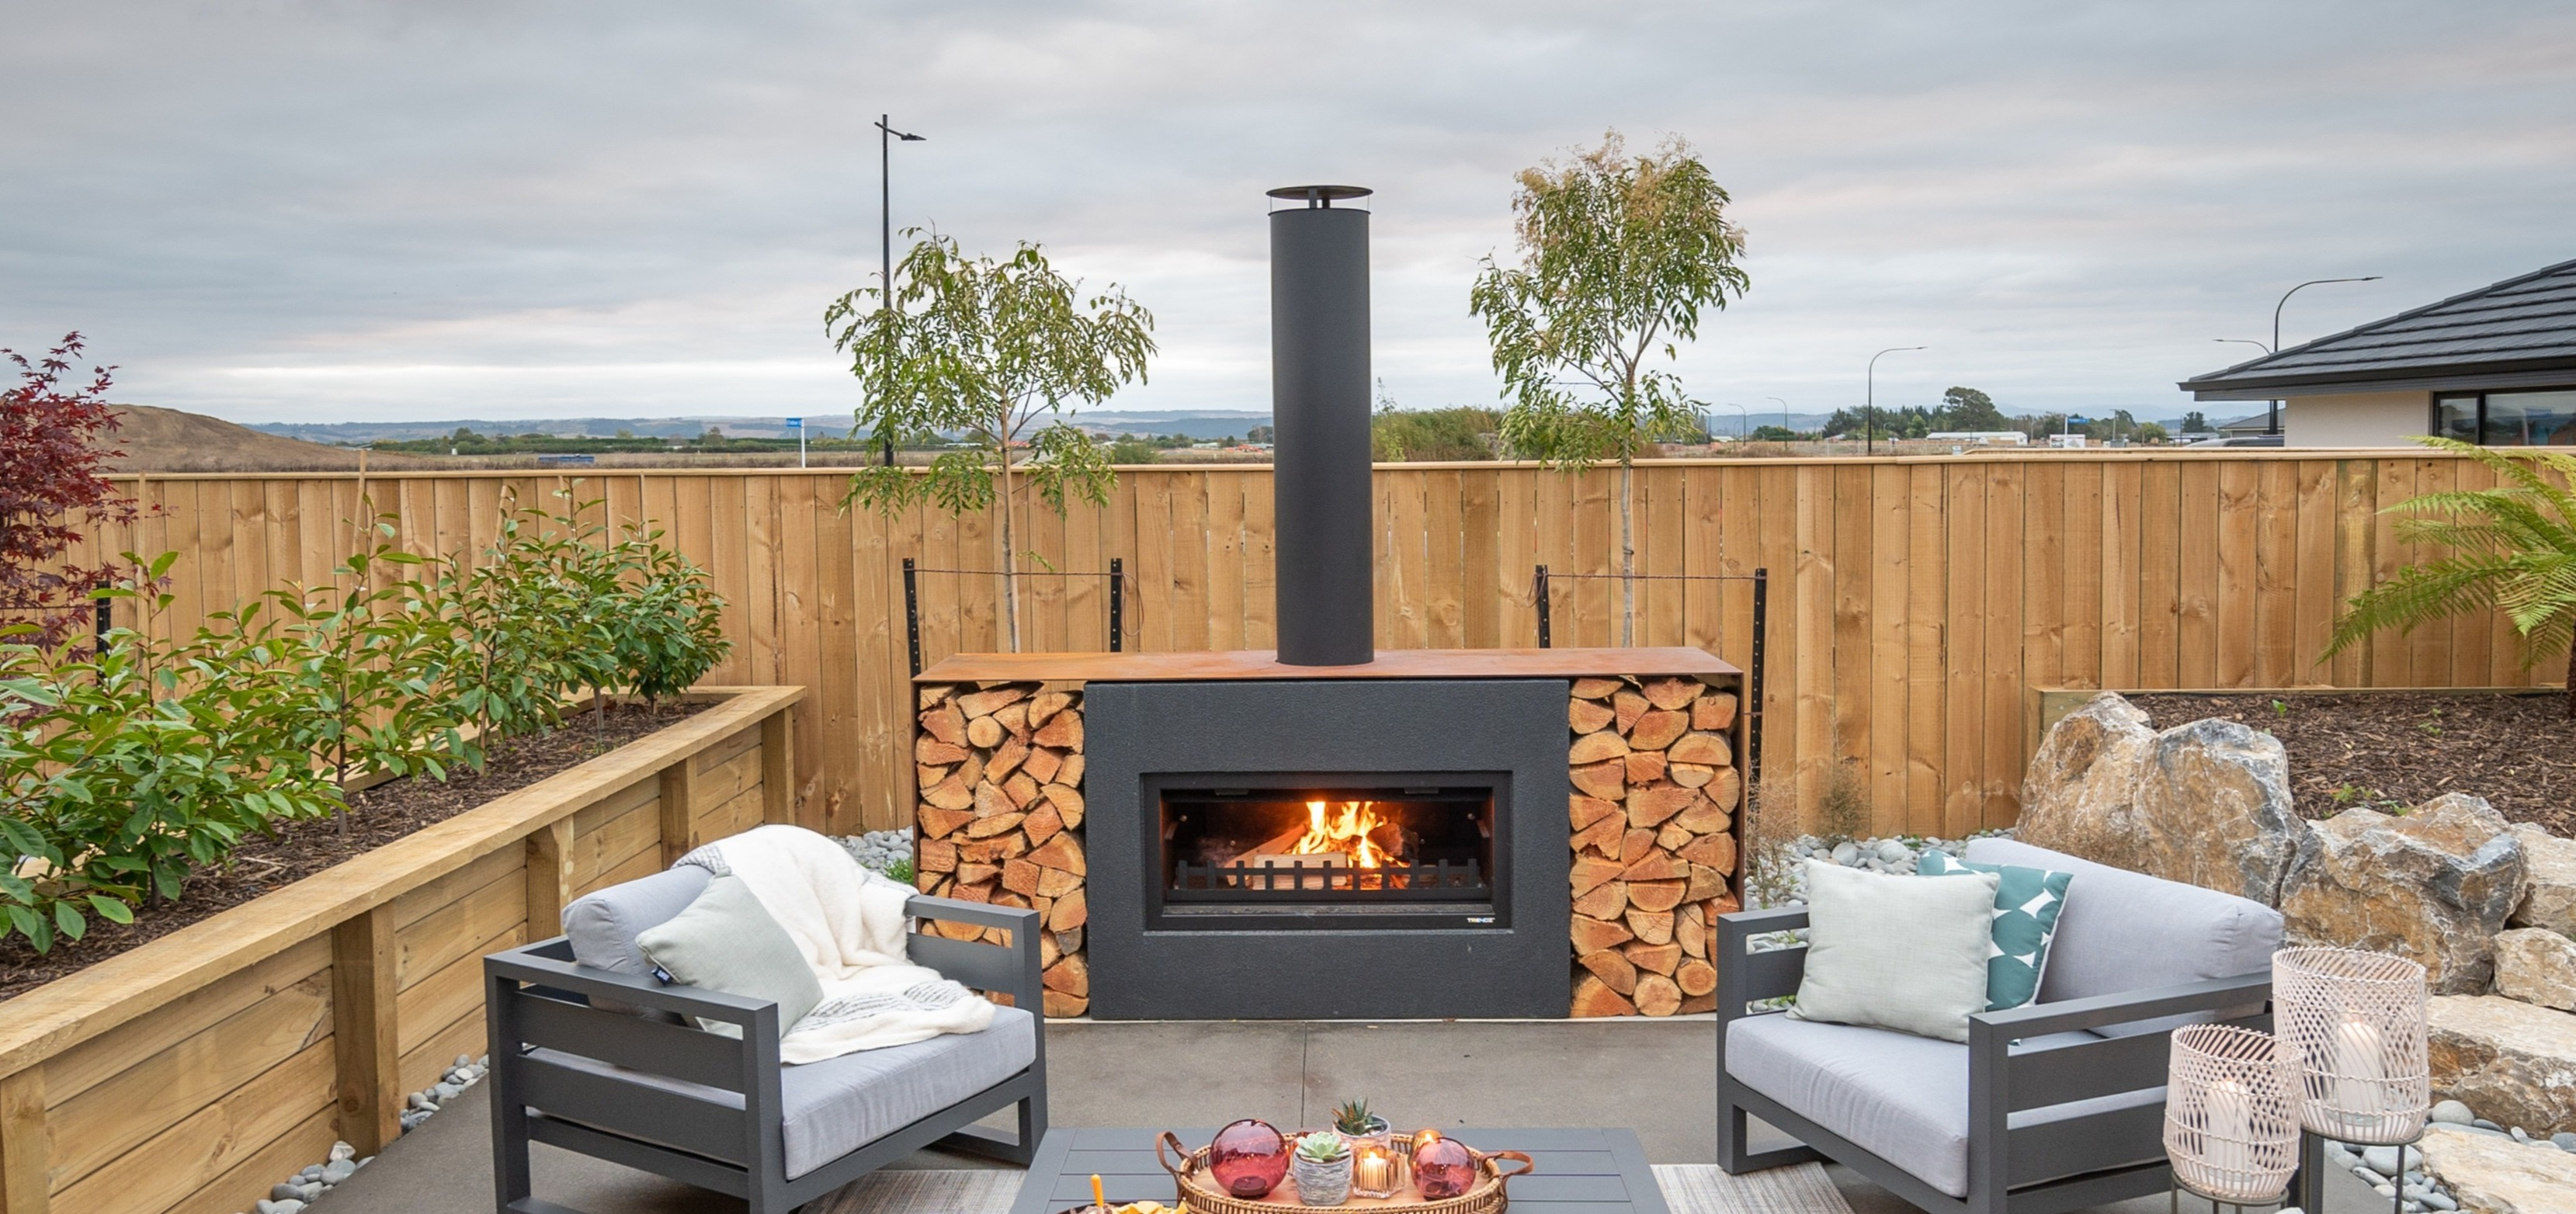 Chimney cap for outdoor fireplace